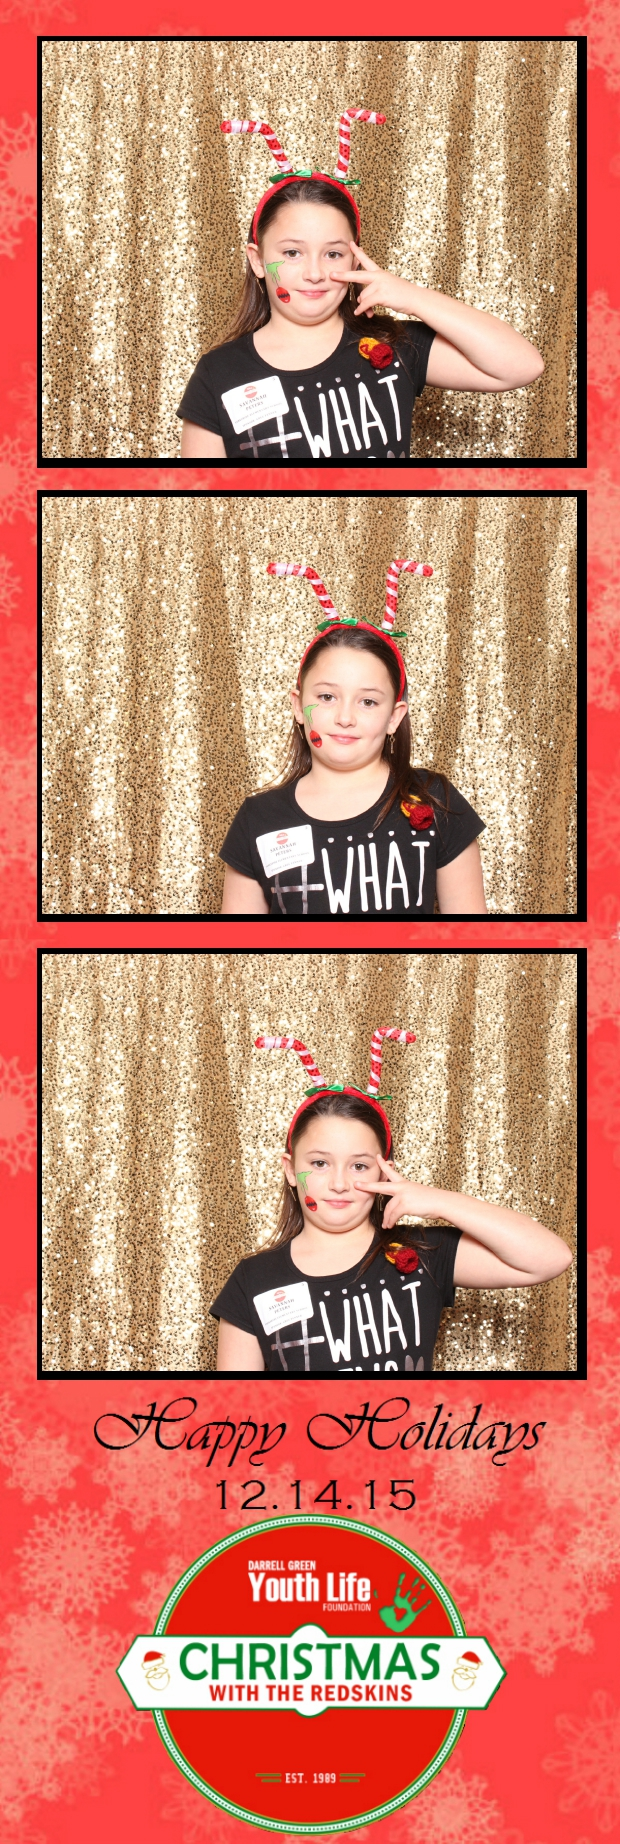 Guest House Events Photo Booth DGYLF Strips (50).jpg